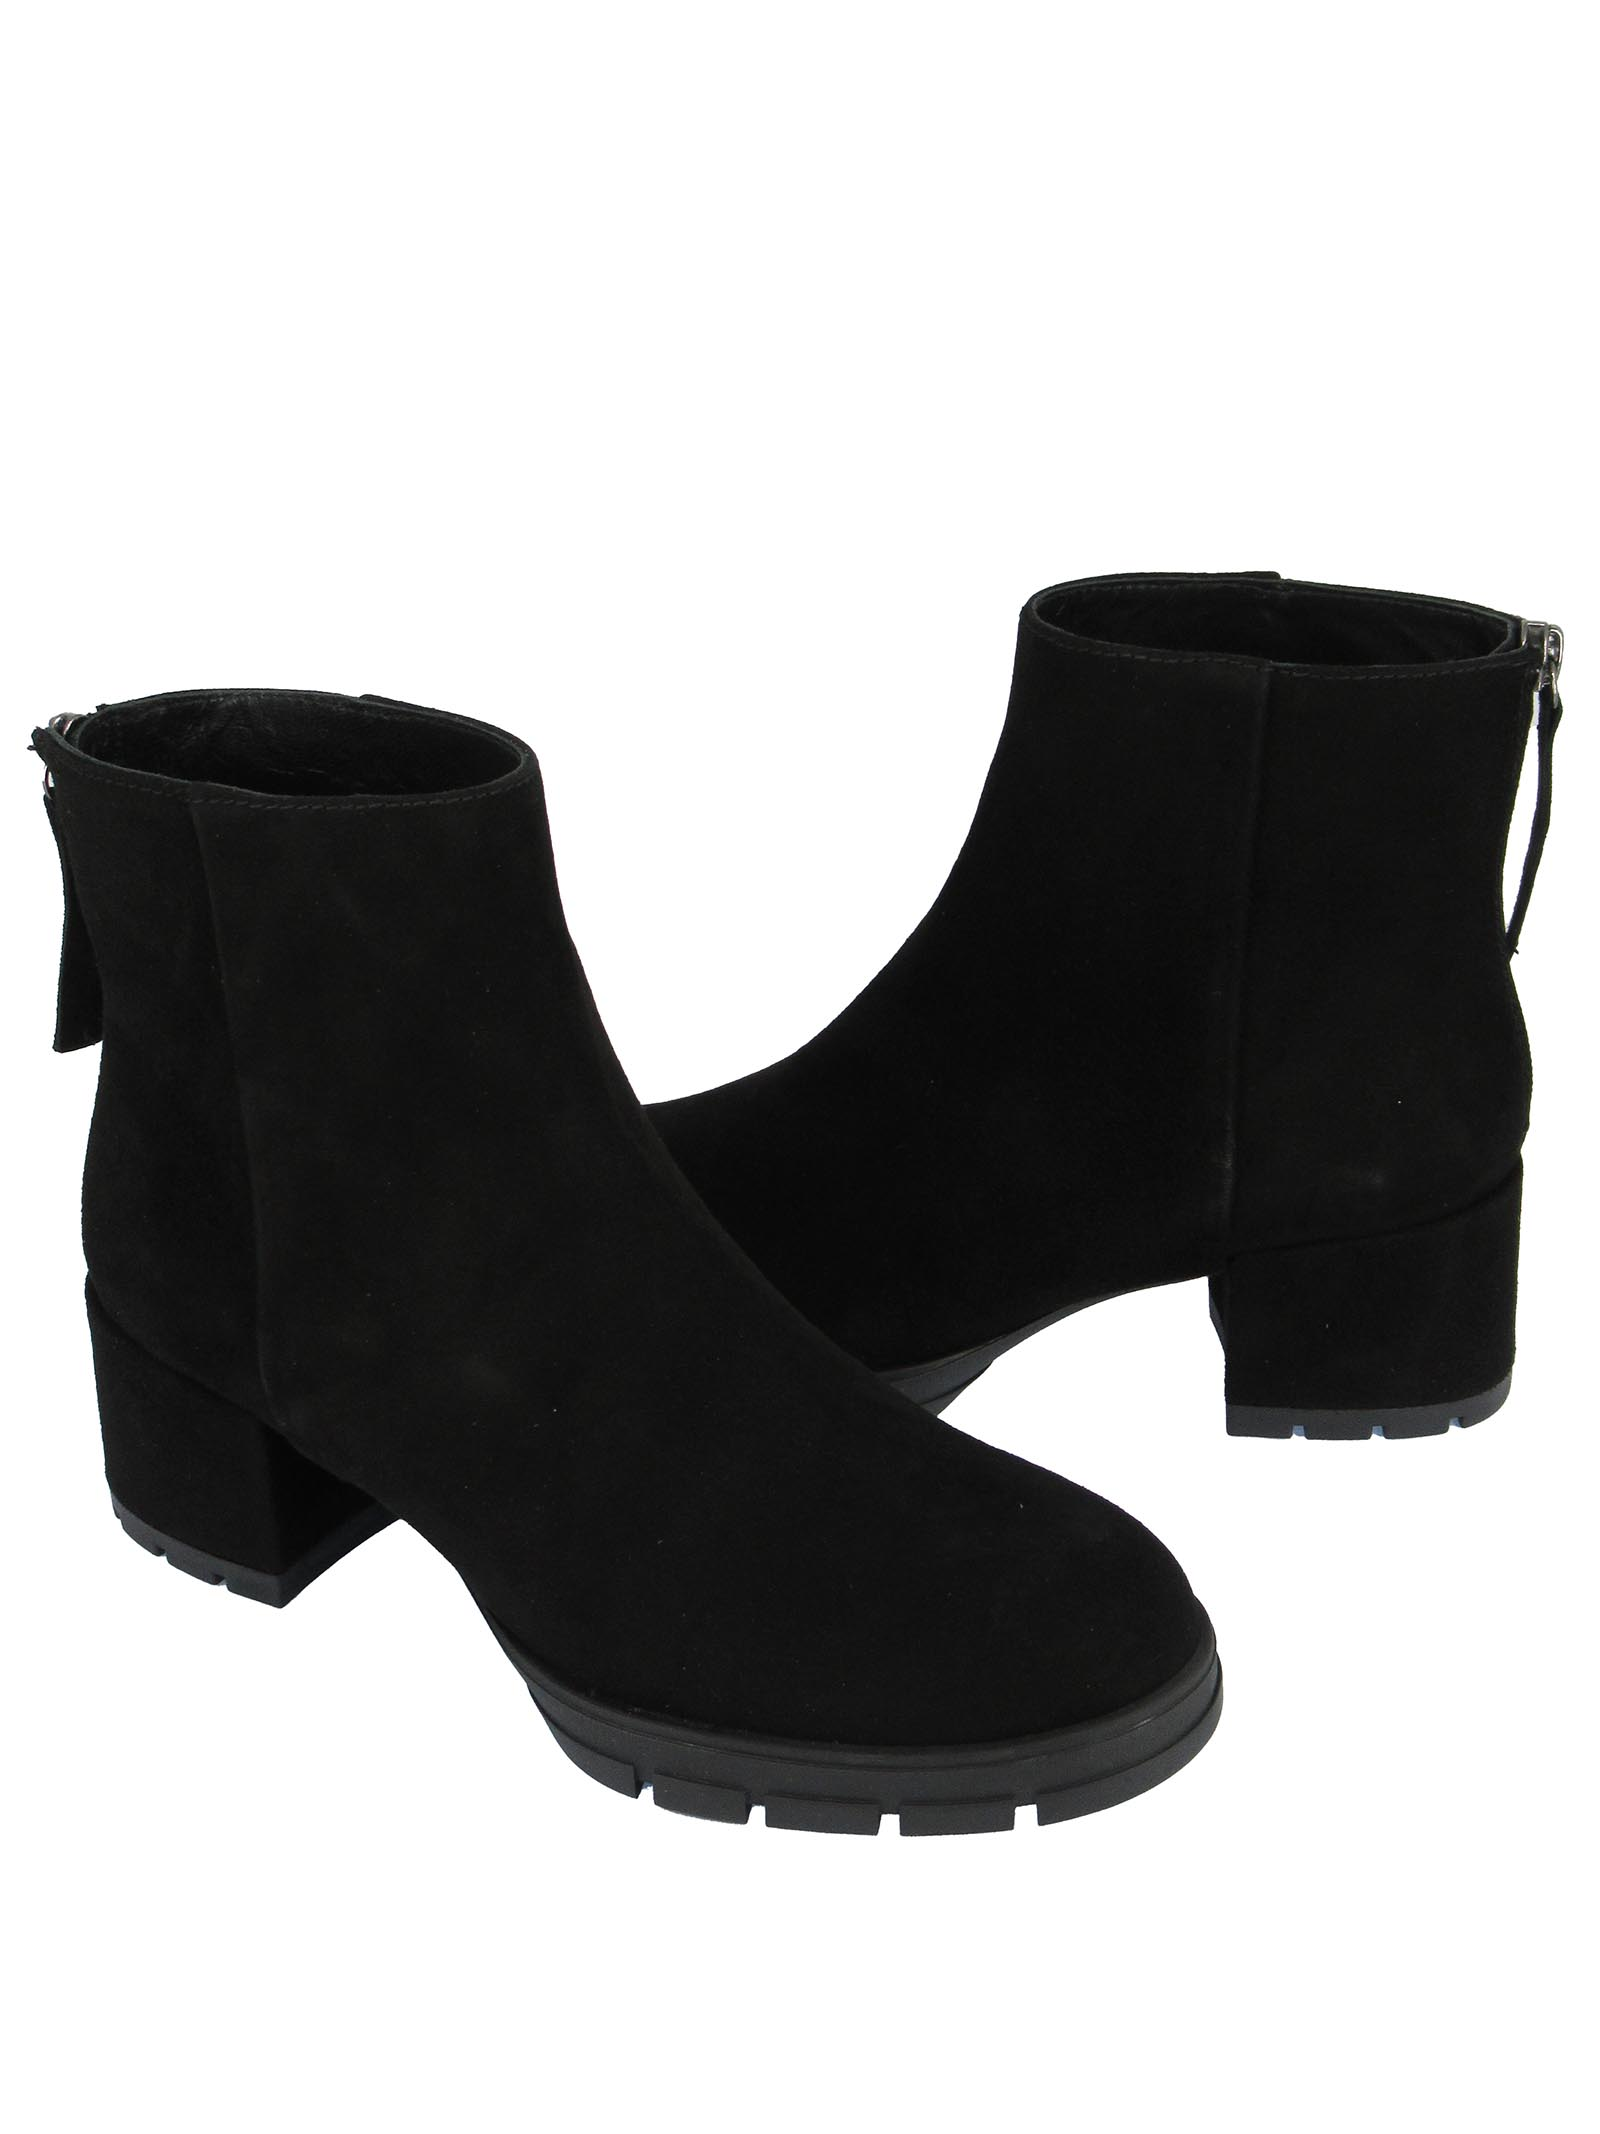 Women's Shoes Ankle Boots in Black Suede with Back Zip Suede Heel and Rubber Platform Unisa | Ankle Boots | JAICO001